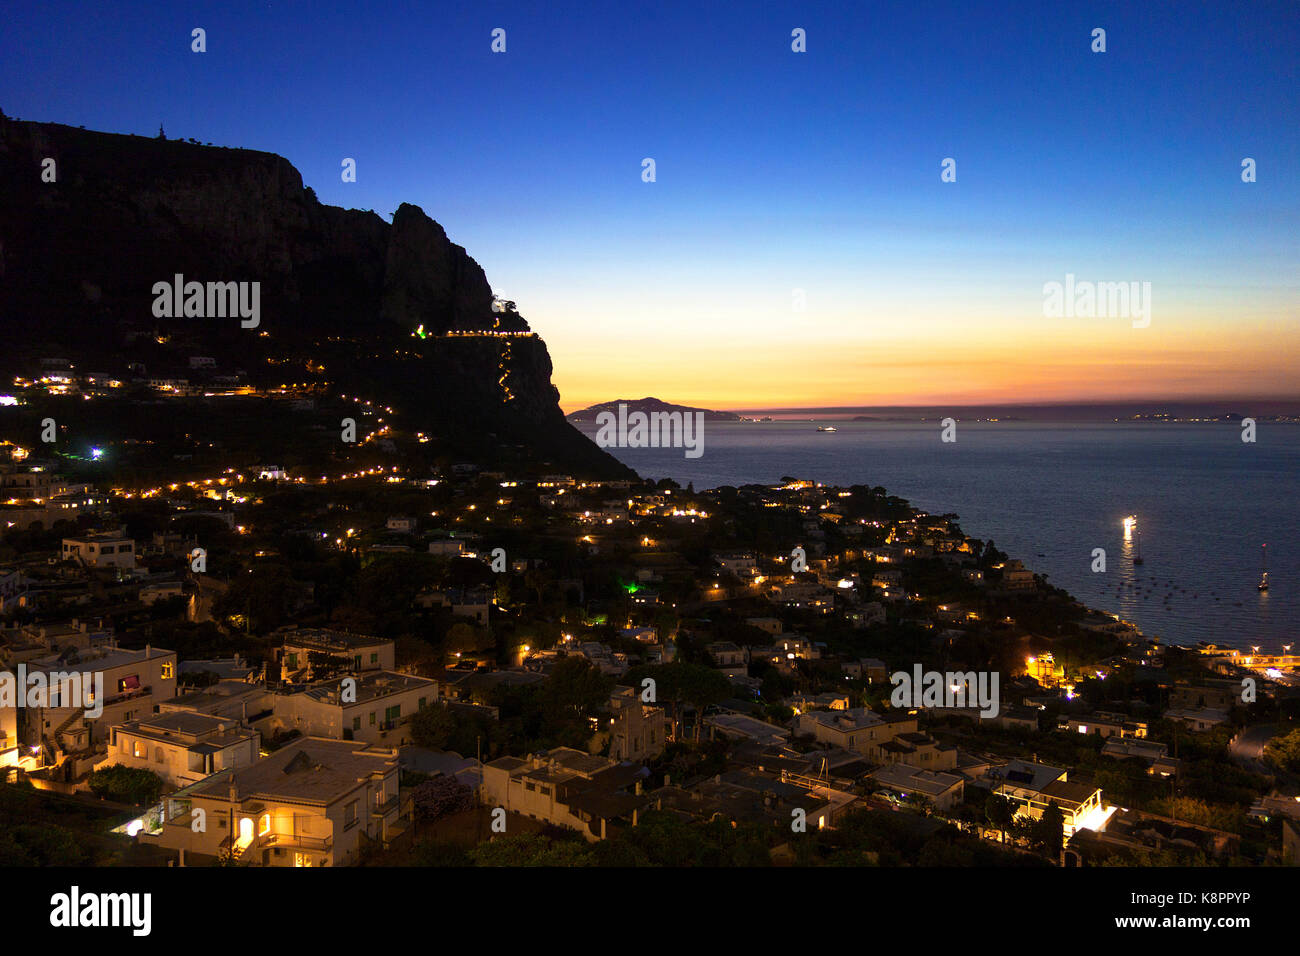 sunset on the island of capri in the bay of naples, italy. - Stock Image